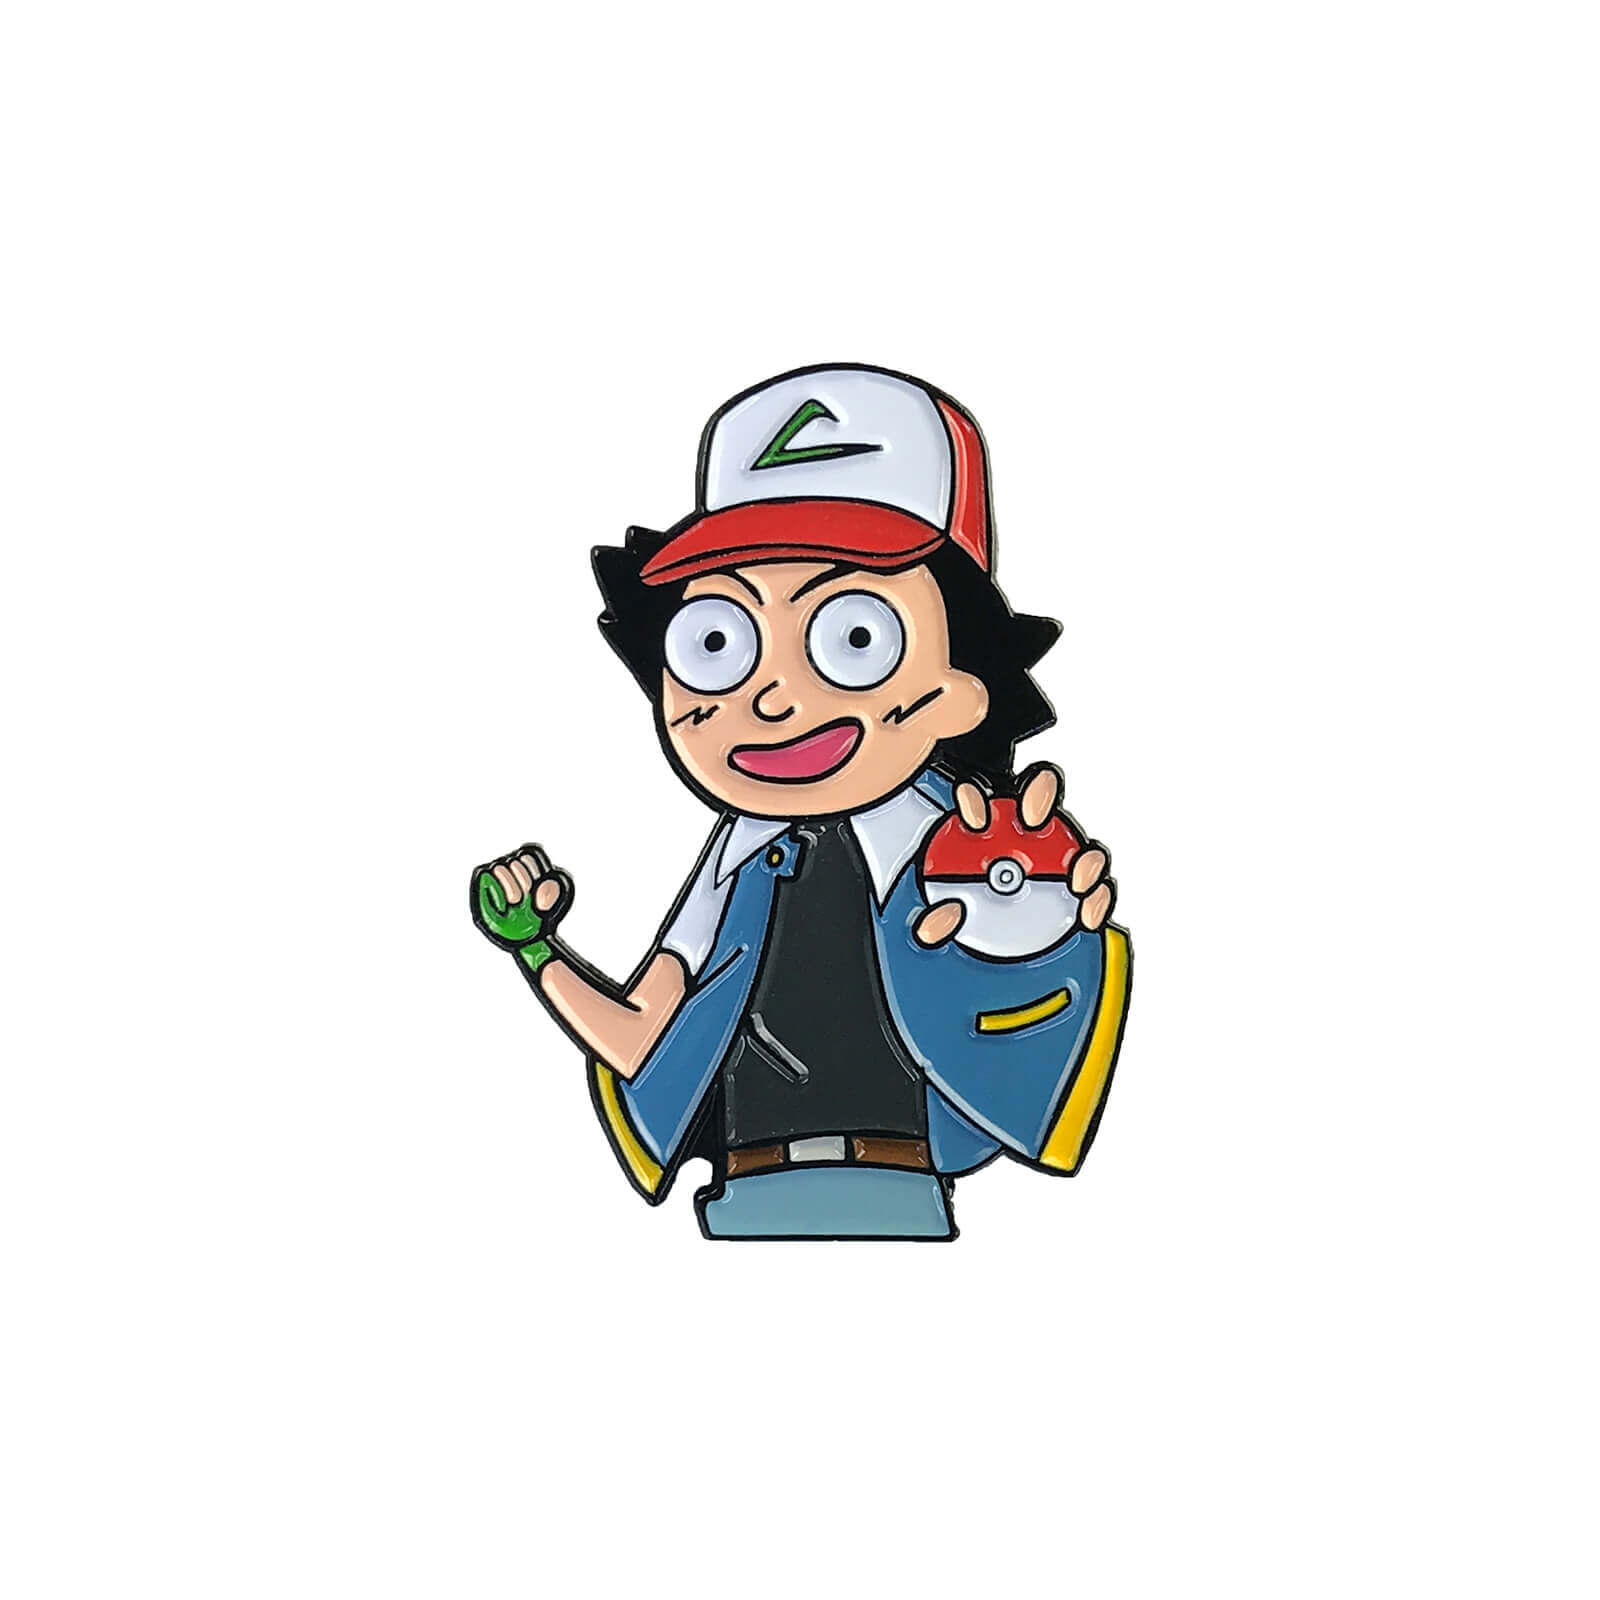 Morty Ketchum (Rick & Morty x Pokemon) Enamel Pin